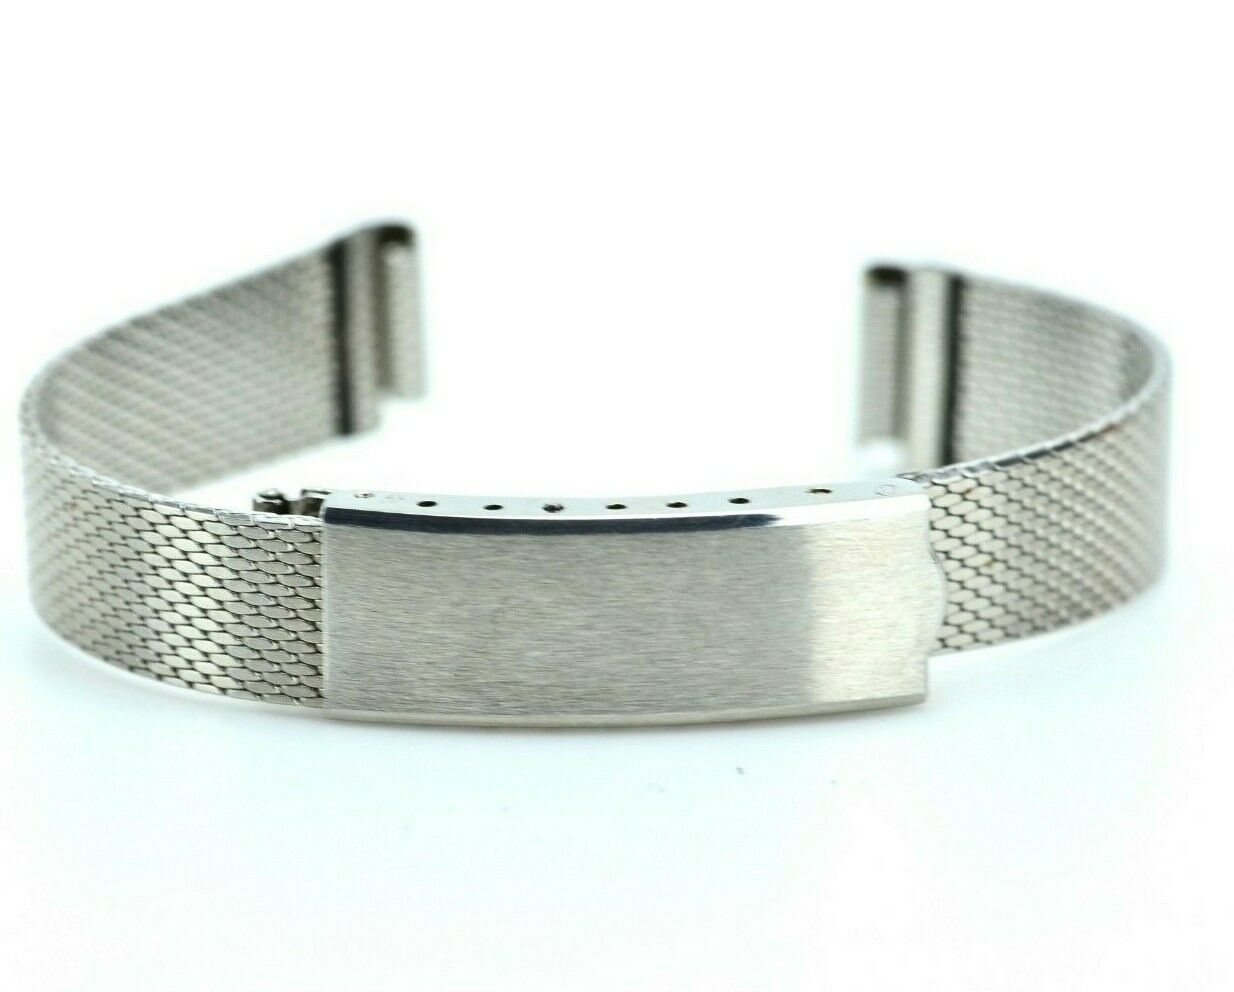 C723 10mm Bambi Ladies Watch Band Bracelet Stainless Steel Link Vintage 13.4